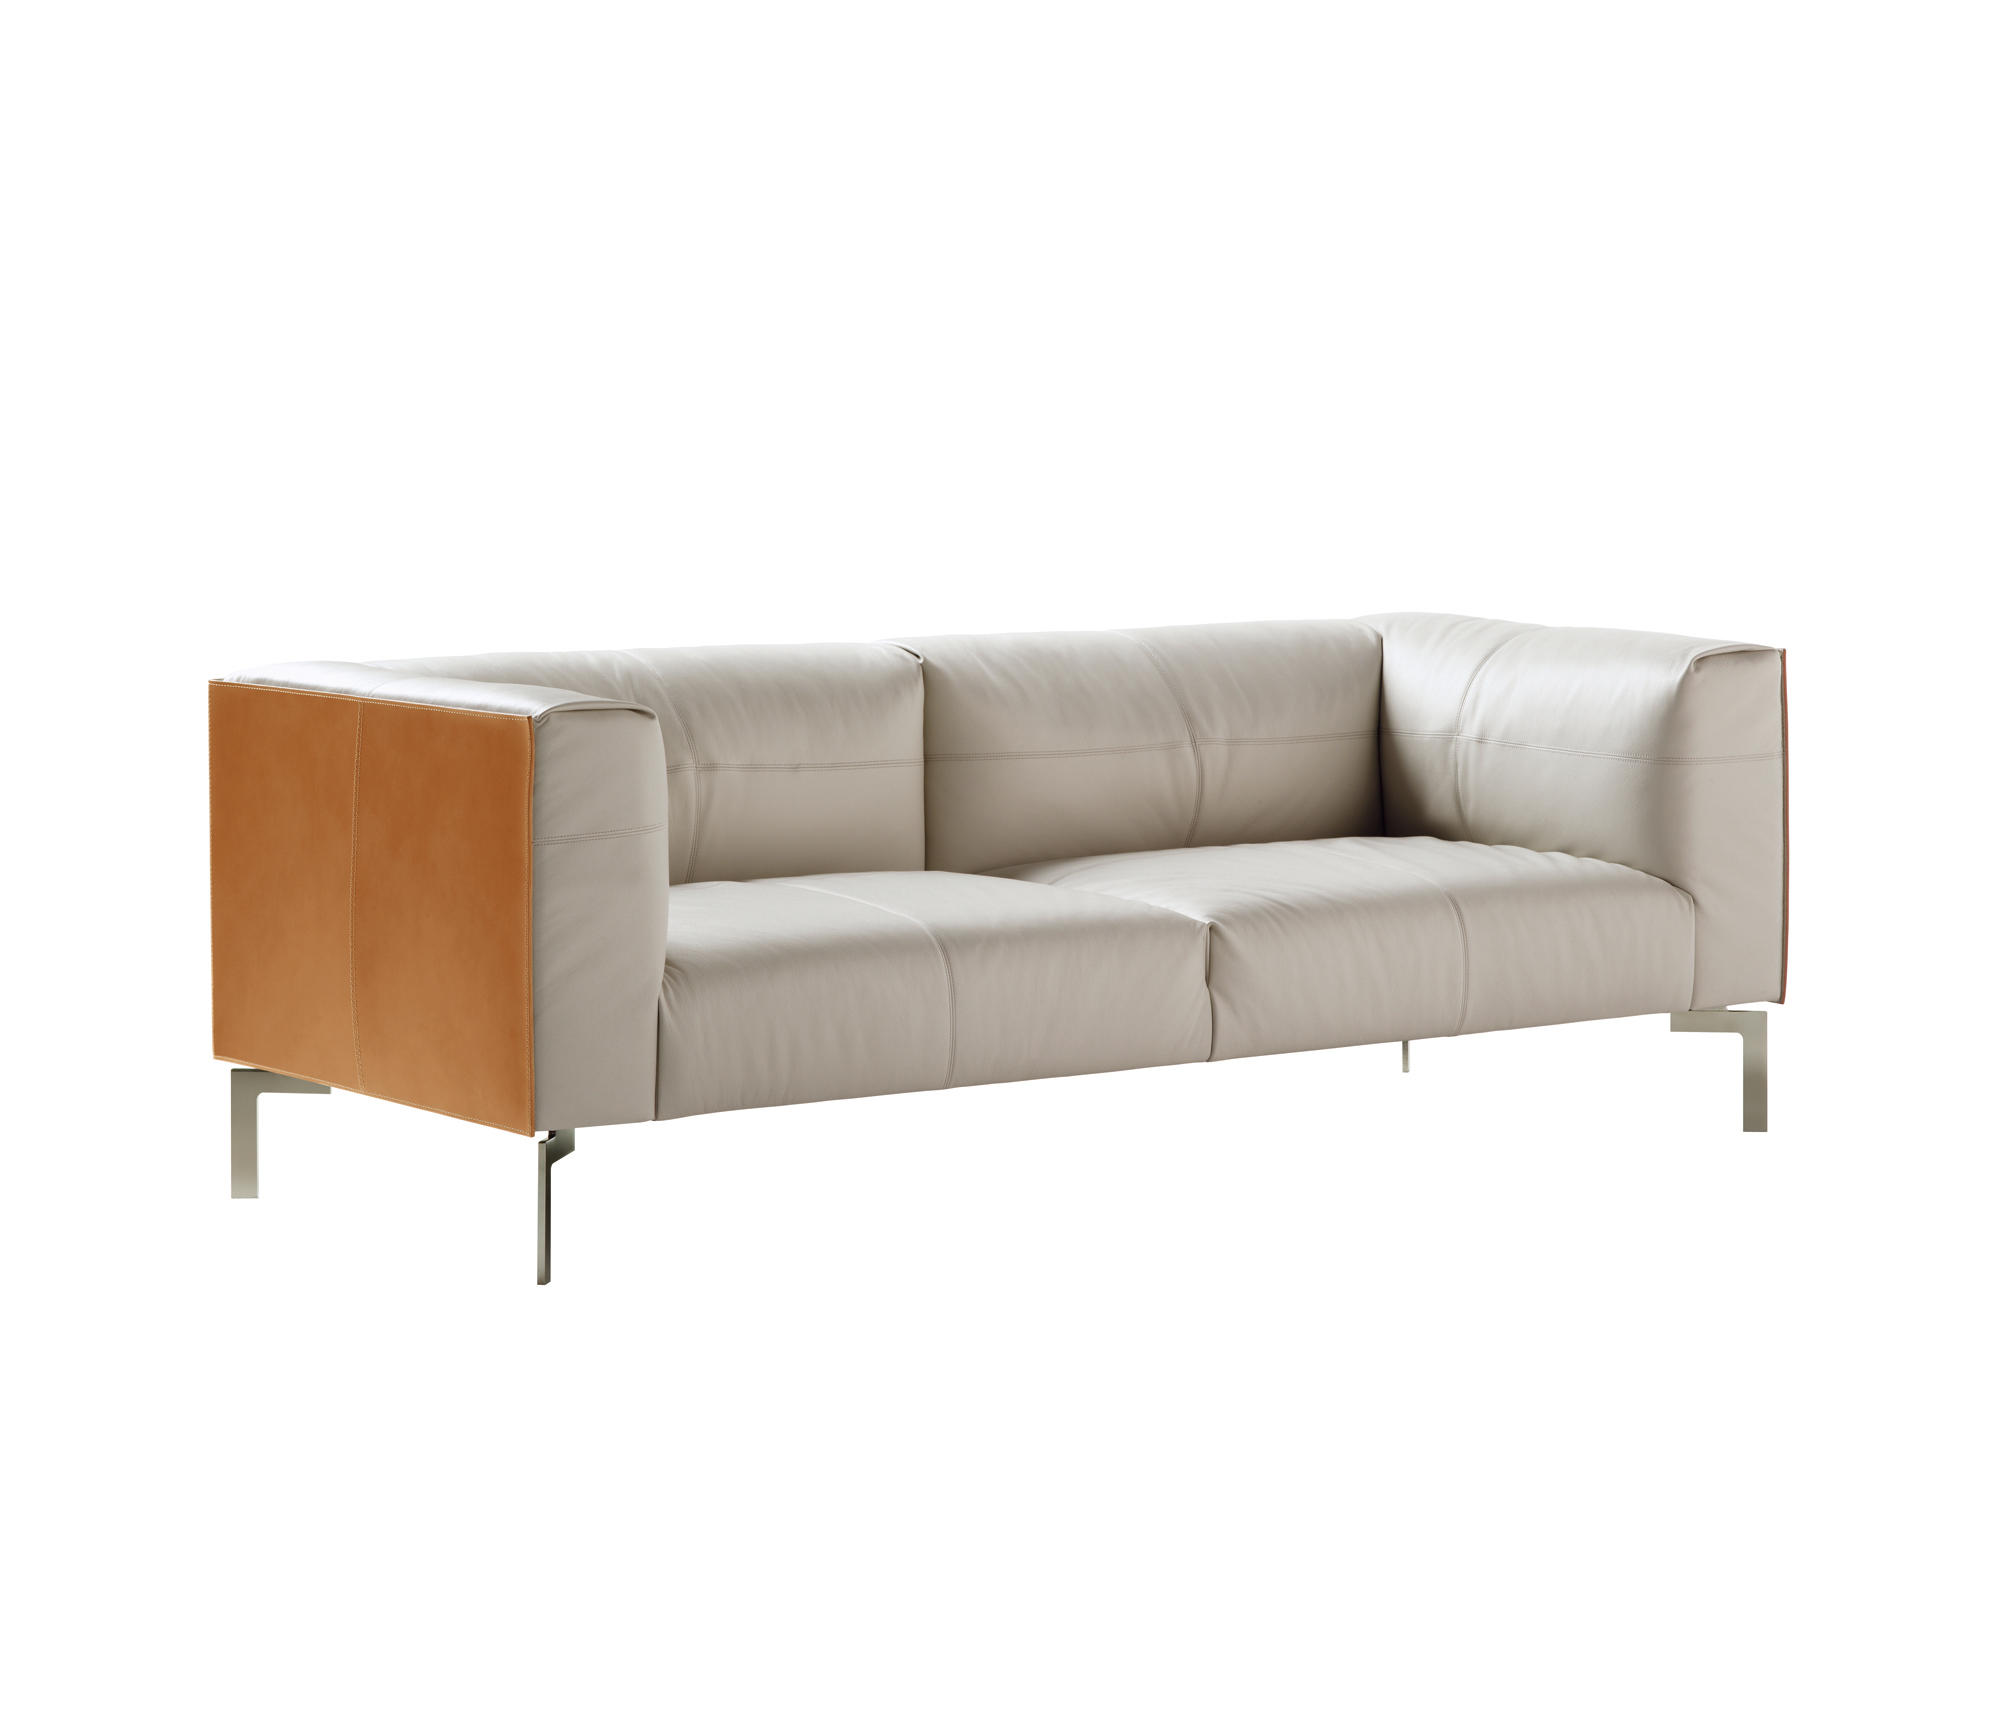 poltrona frau sofa kennedee city evansville going out of business sofas designer socrate black